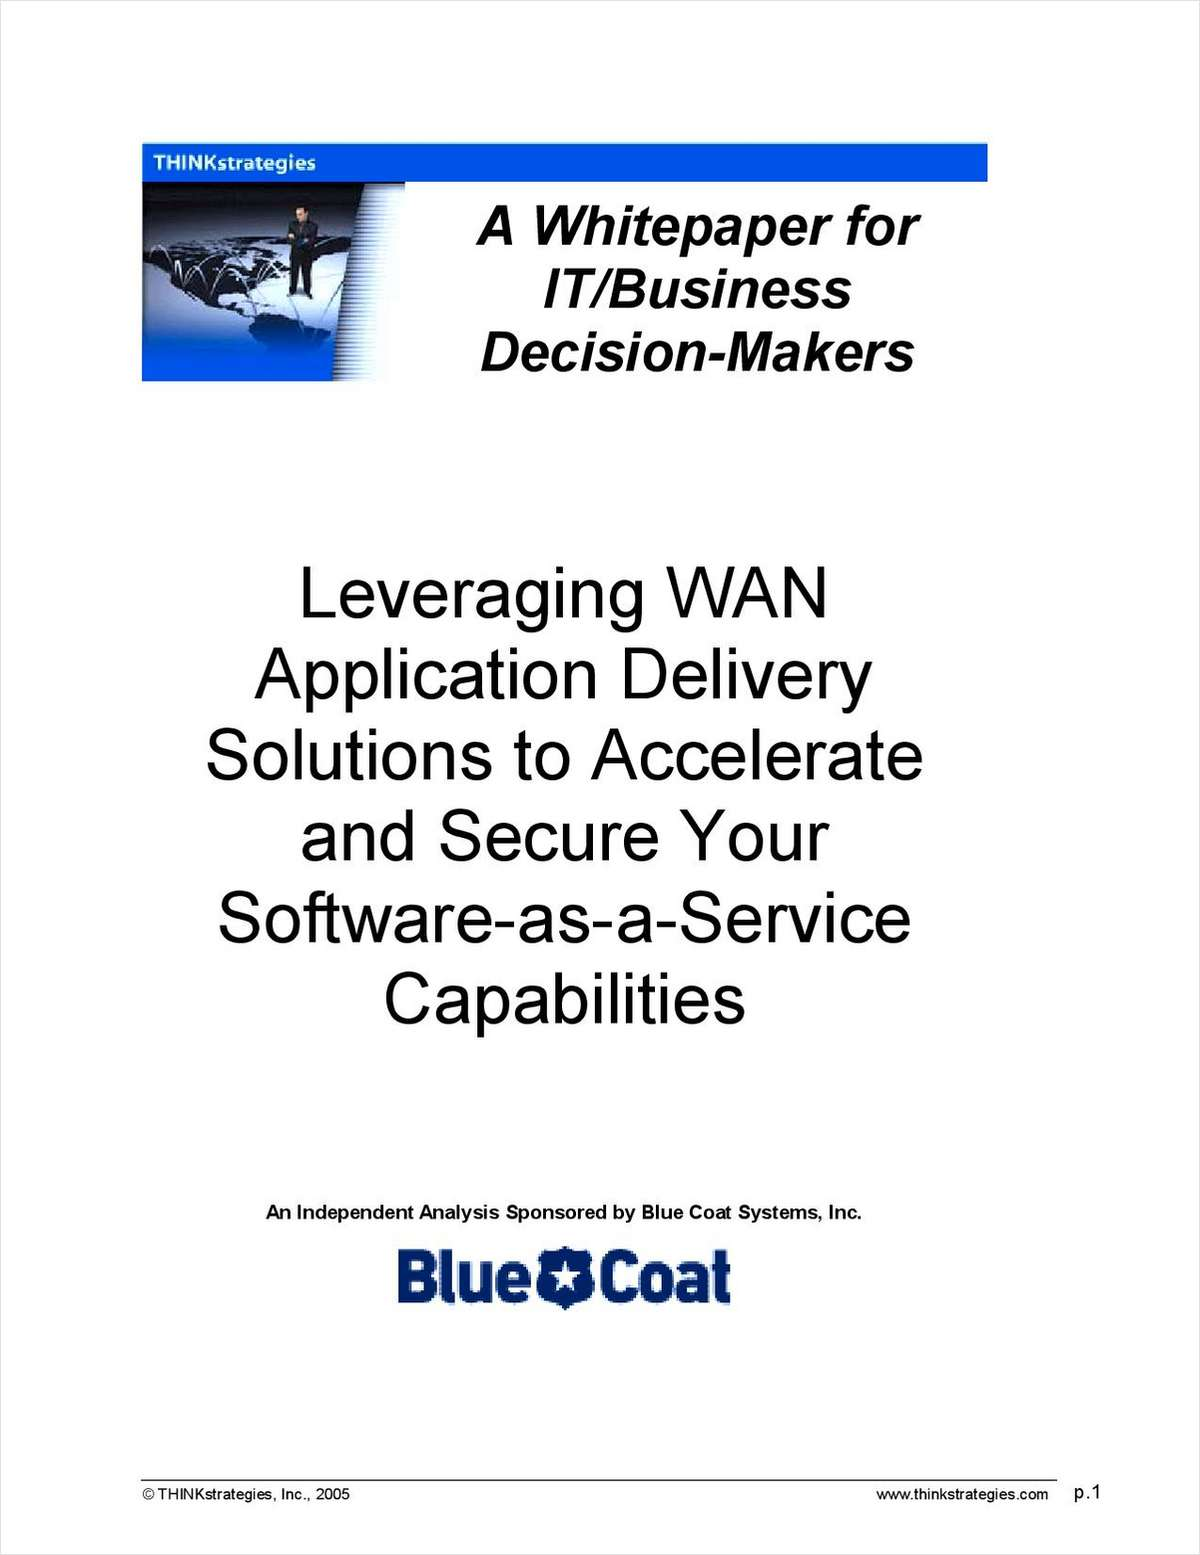 Leveraging WAN Application Delivery Solutions to Accelerate and Secure Your Software-as-a-Service Capabilities